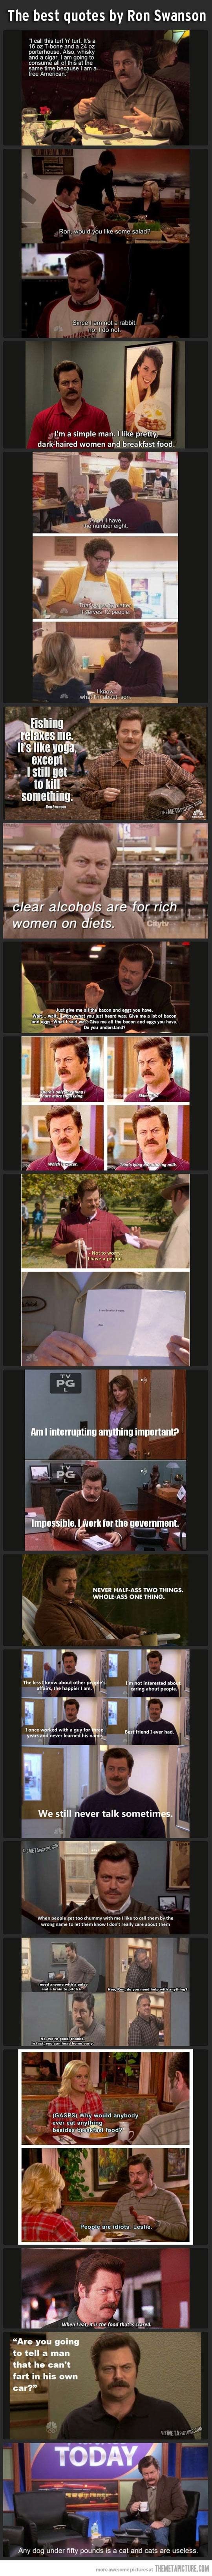 Best quotes by Ron Swanson. I don't follow Parks and Rec faithfully, but I love this character.